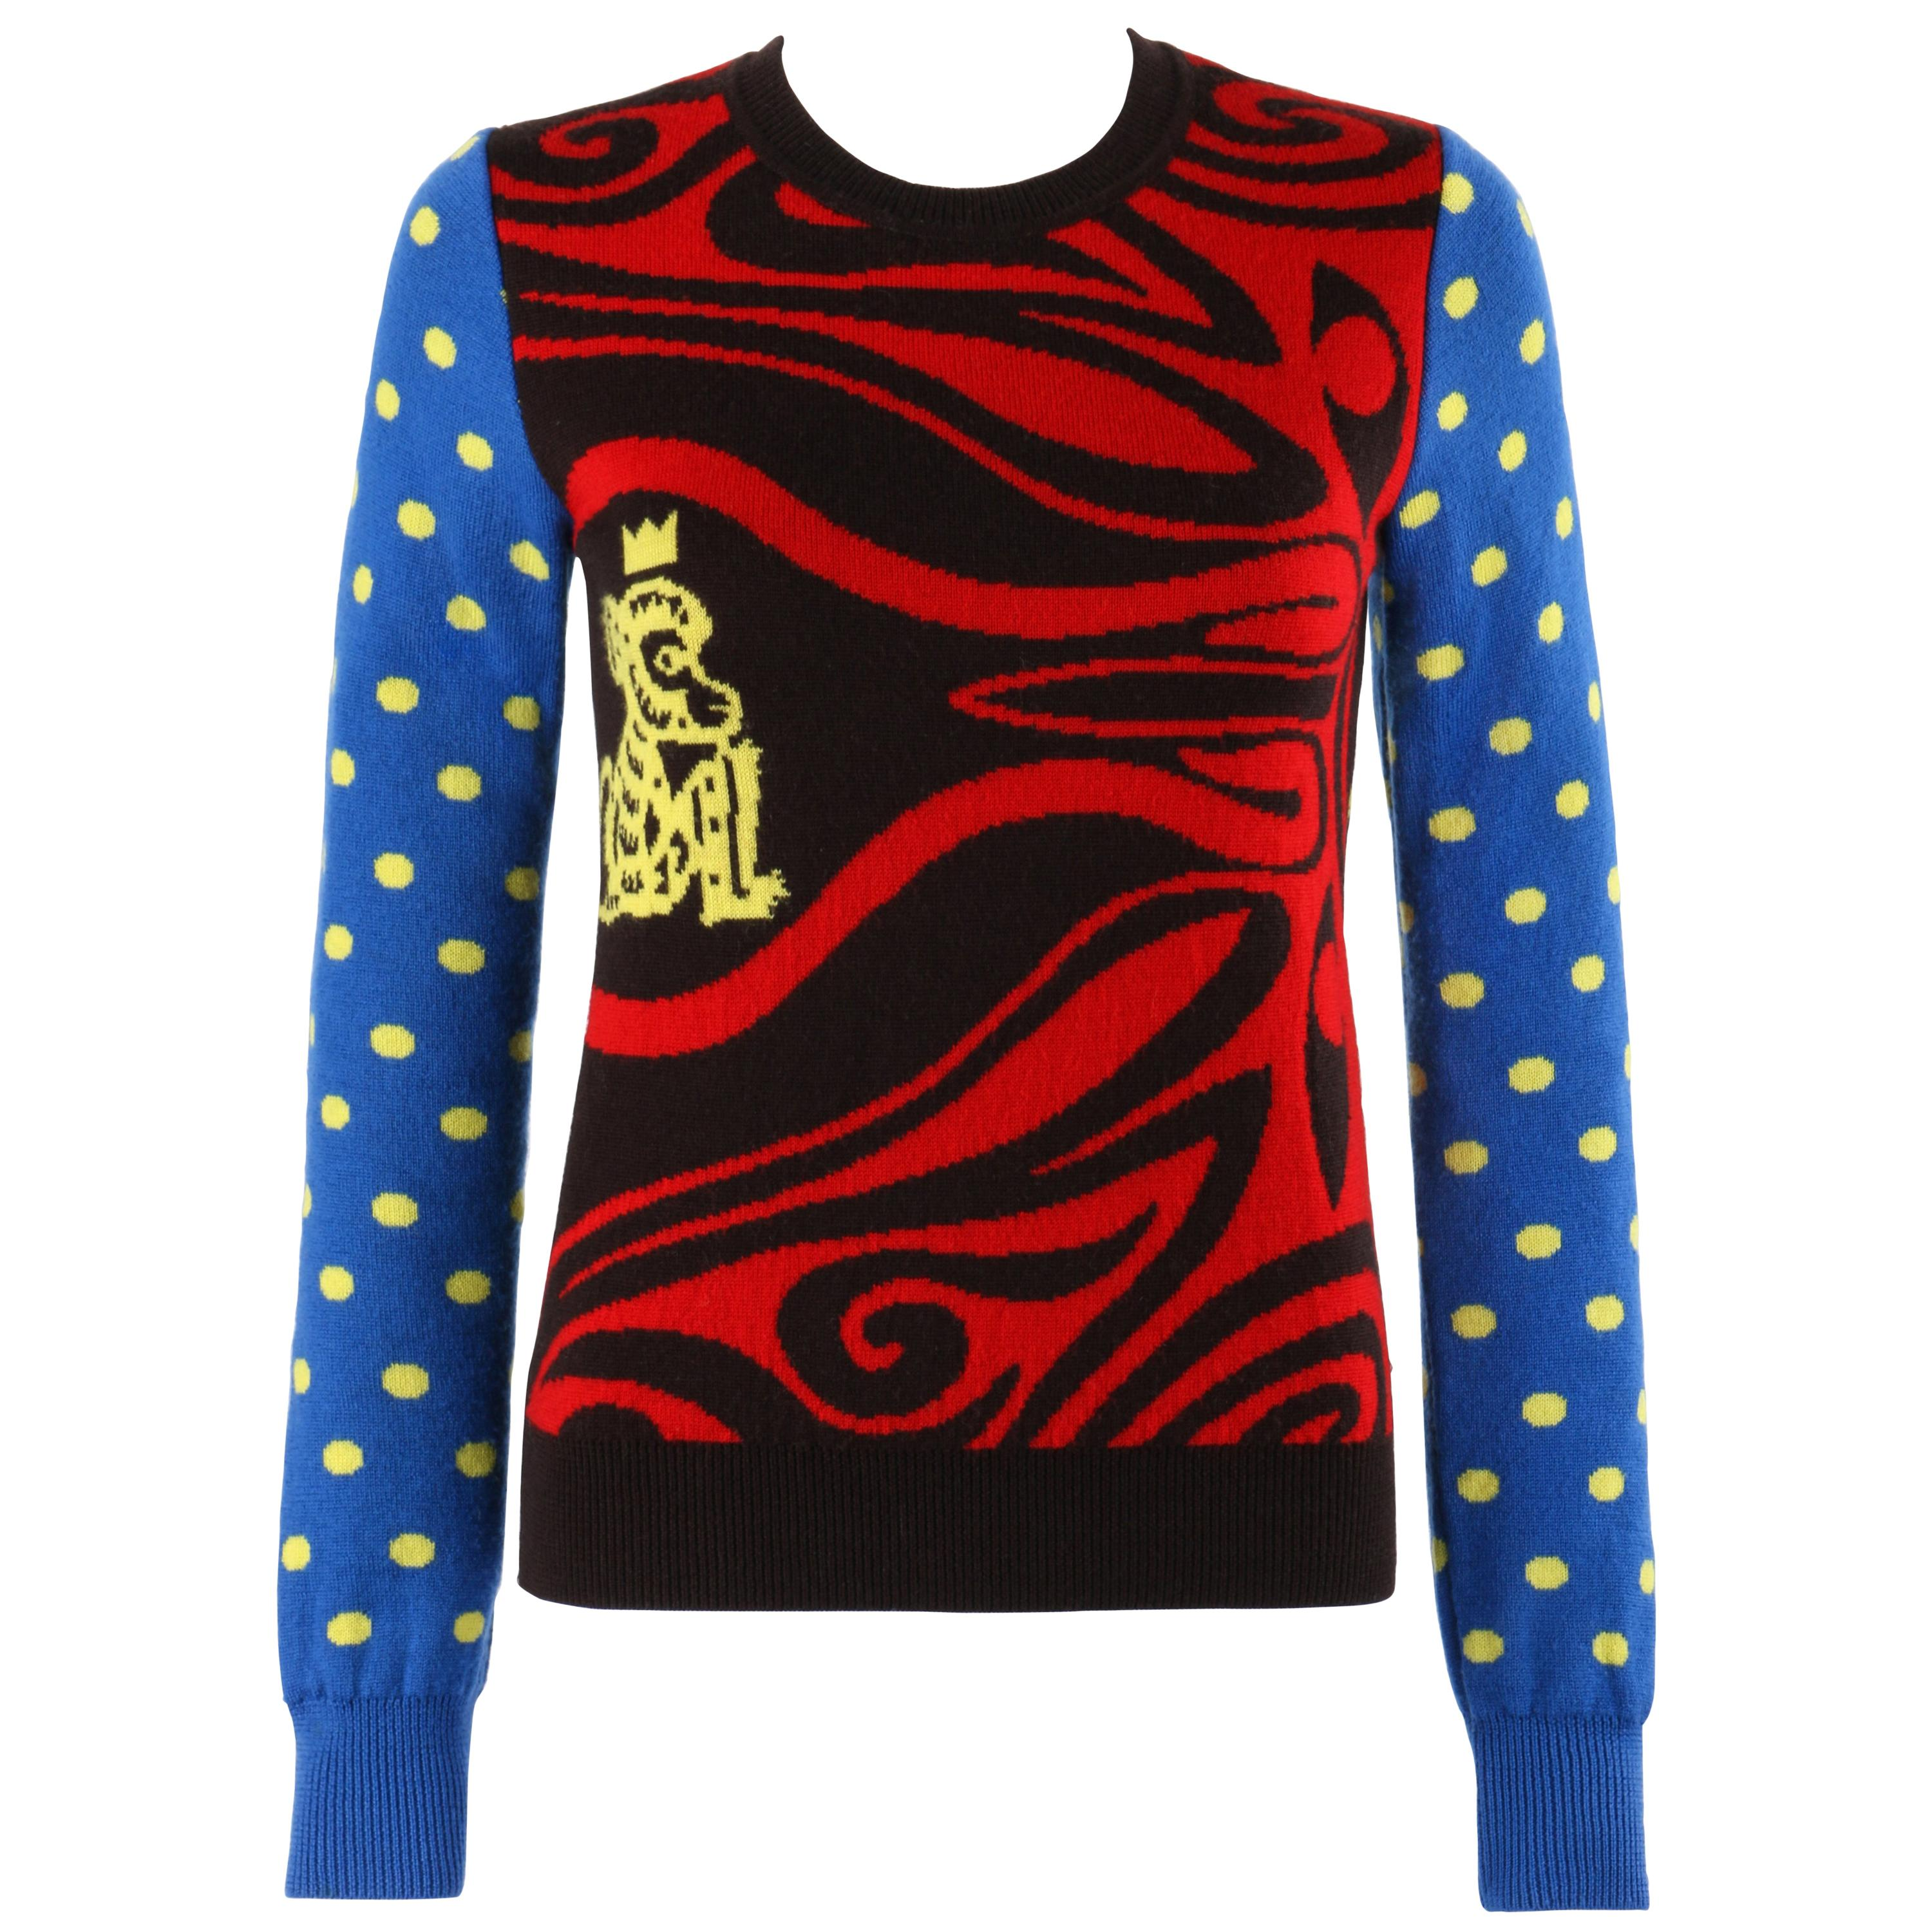 WALTER VAN BEIRENDONCK 2000's Multi-Color Abstract Polka Dot Monkey Sweater